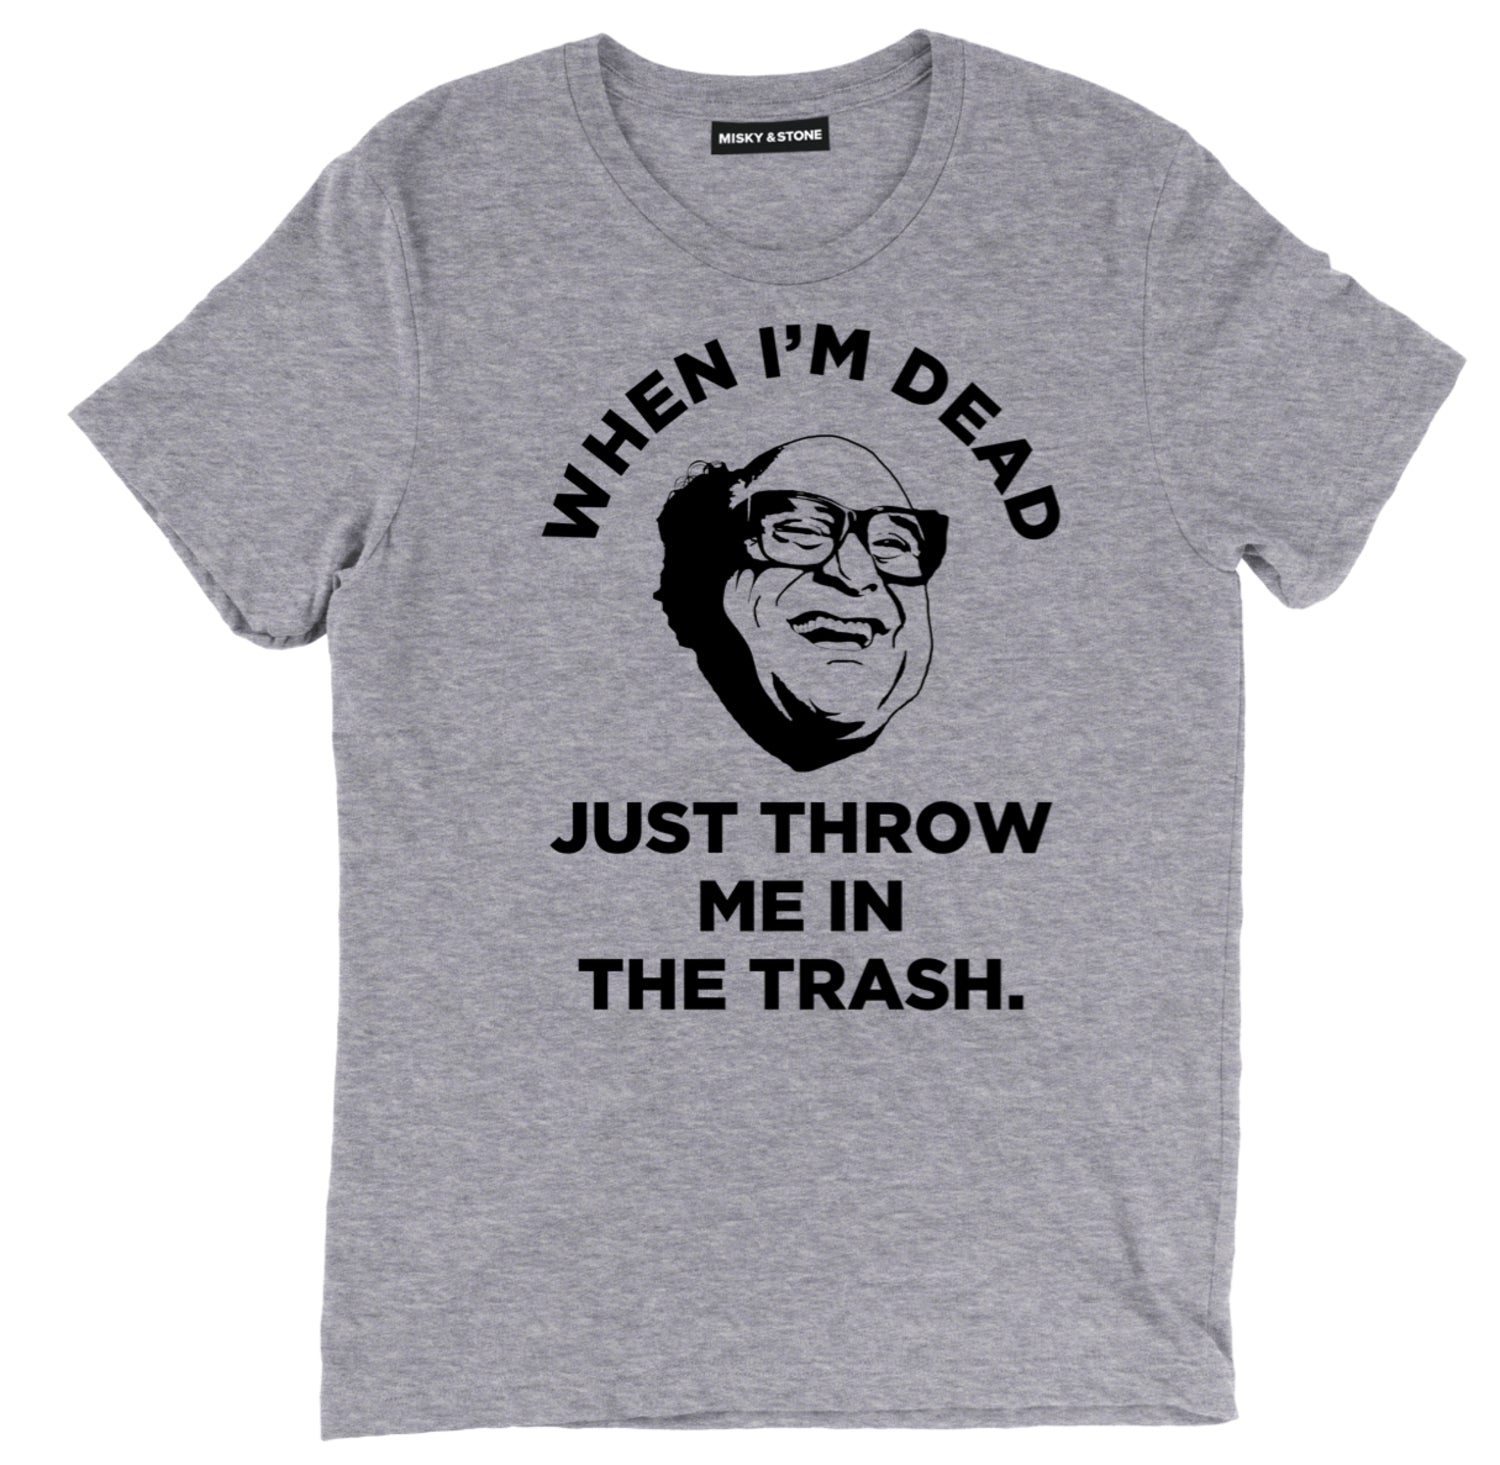 When Im Dead Just Throw Me In The Trash T Shirt, Frank Always Sunny in Philadelphia T sHIRT, Always Sunny in Philadelphia Tee, Frank Always Sunny in Philadelphia Tee, Frank Always Sunny in Philadelphia Quote Tee